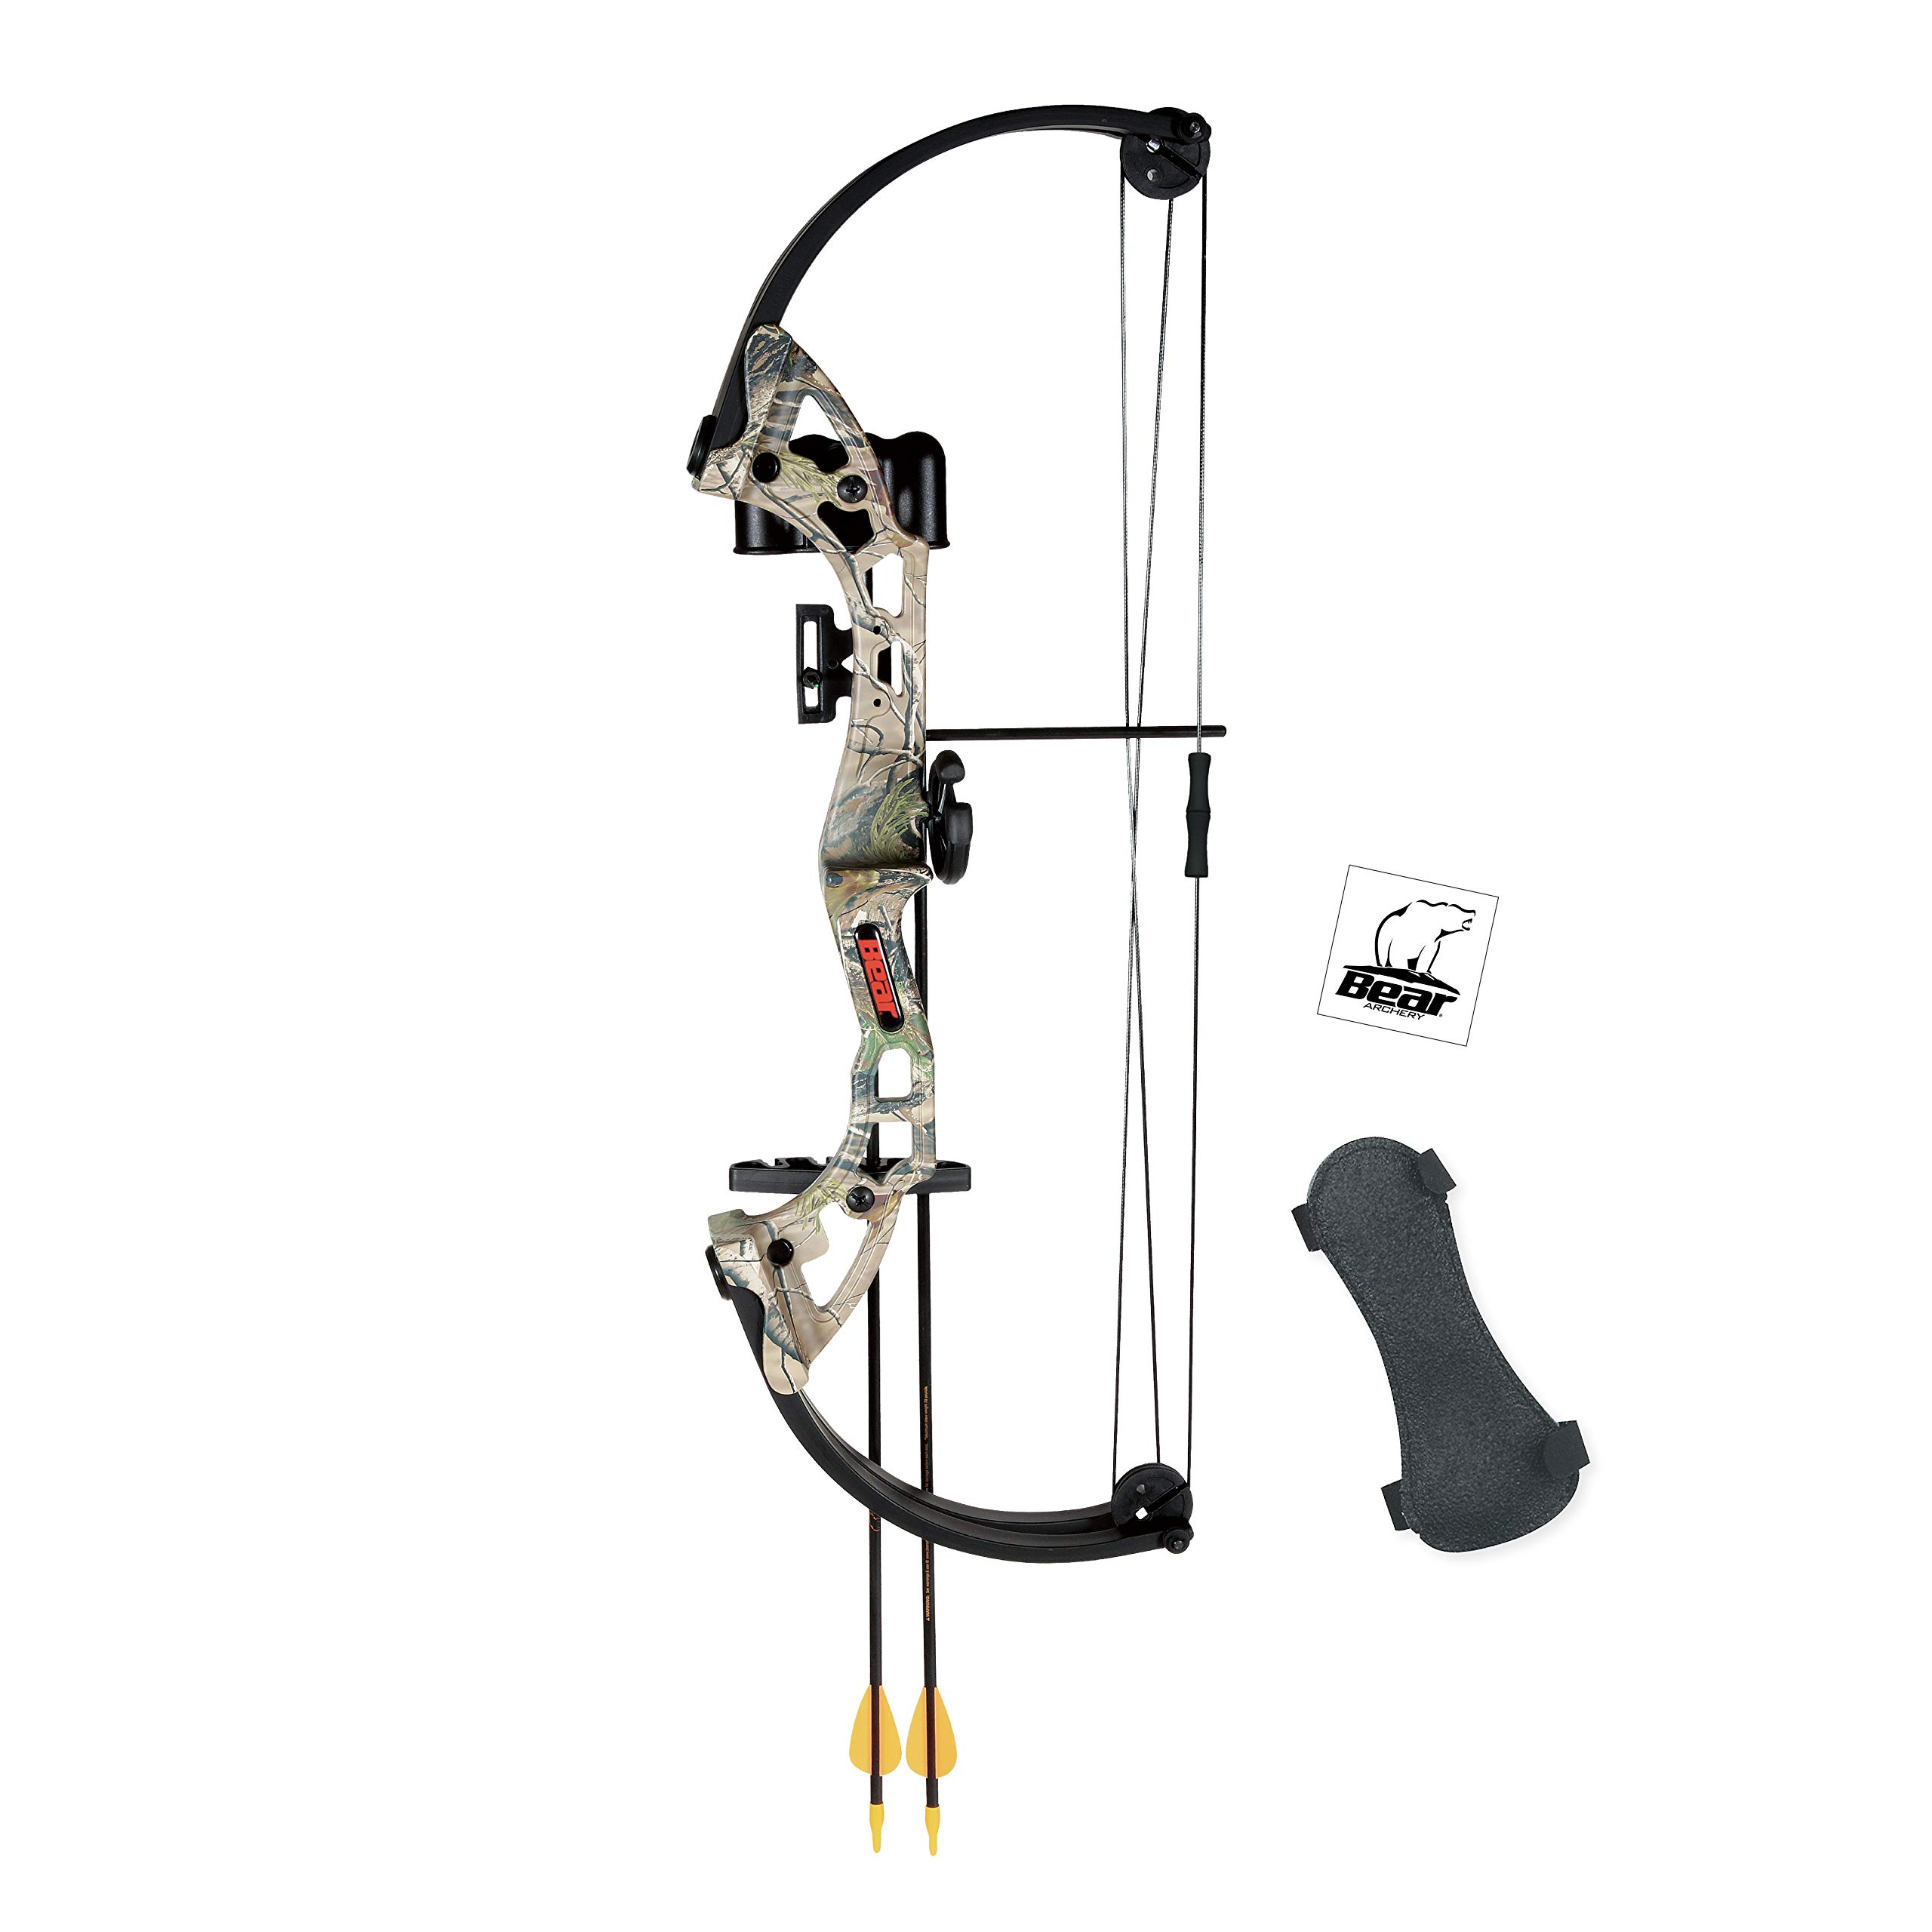 Bear Archery Brave Youth Bow Includes Whisker Biscuit, Arrows, Armguard, and Arrow Quiver Recommended for Ages 8 and Up – Camo